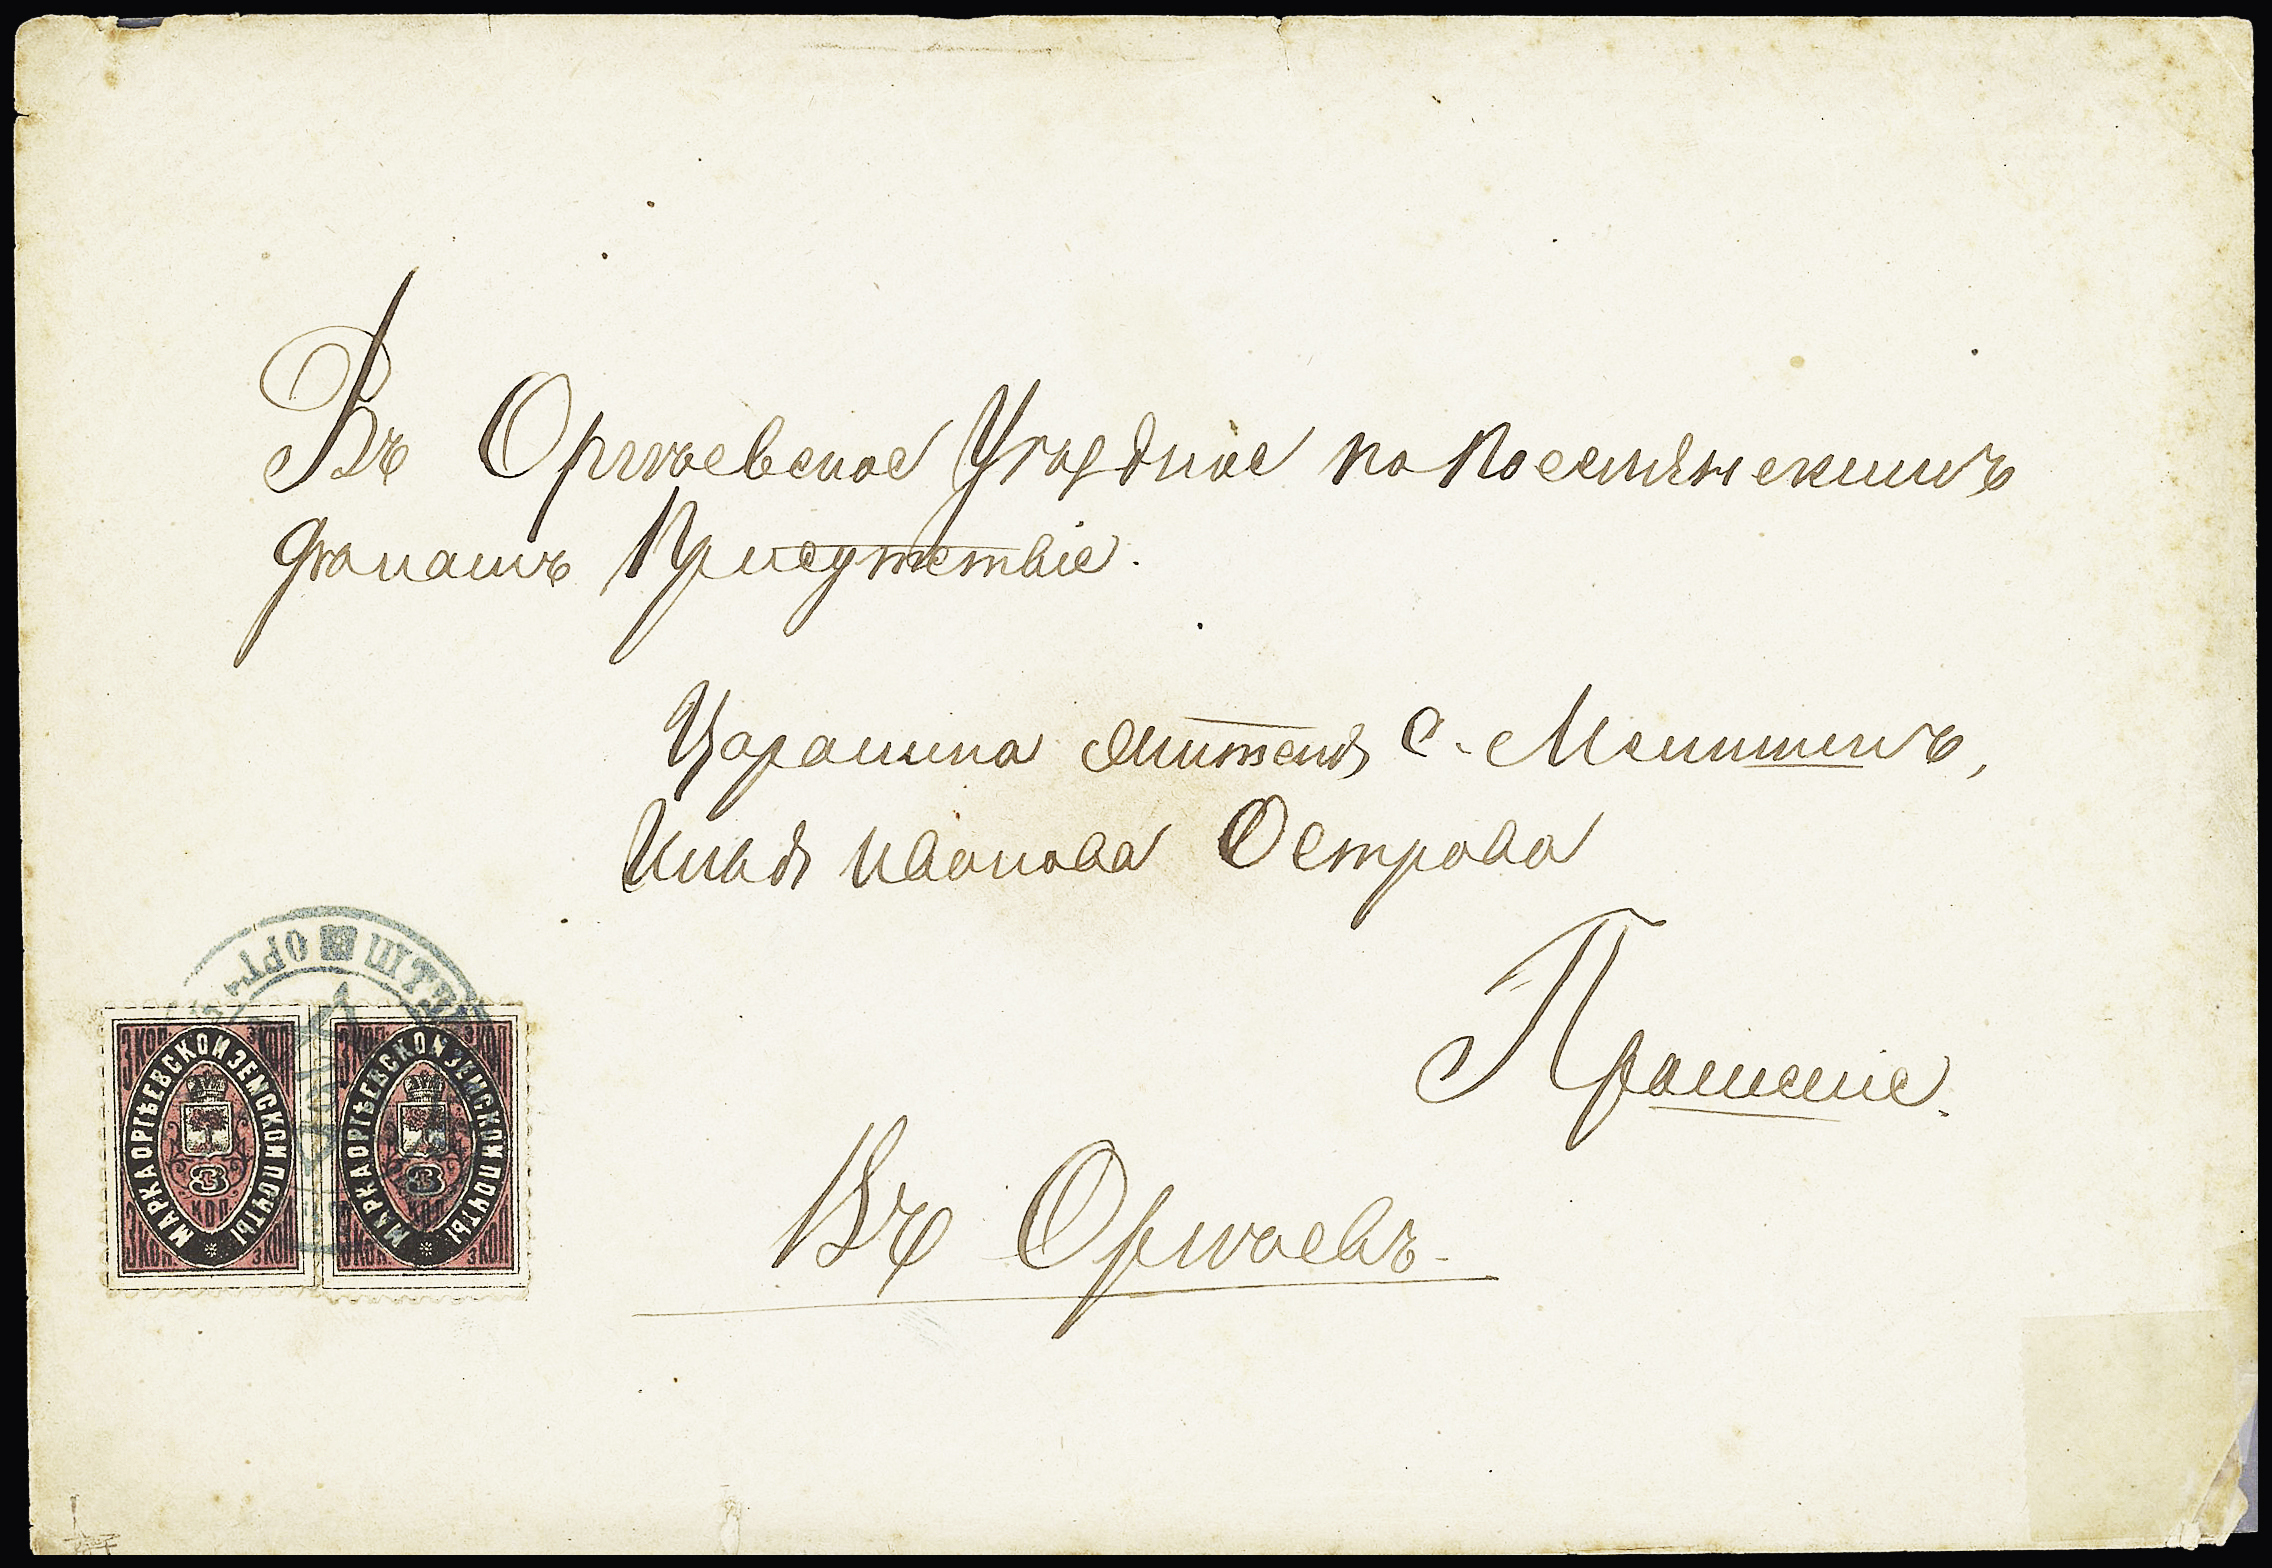 Lot 506 - Eastern Europe » RUSSIA - ZEMSTVOS » Orgheev (Bessarabia Government)  -  Le Timbre Classique SA SALE ON OFFERS N ° 37 PARIS